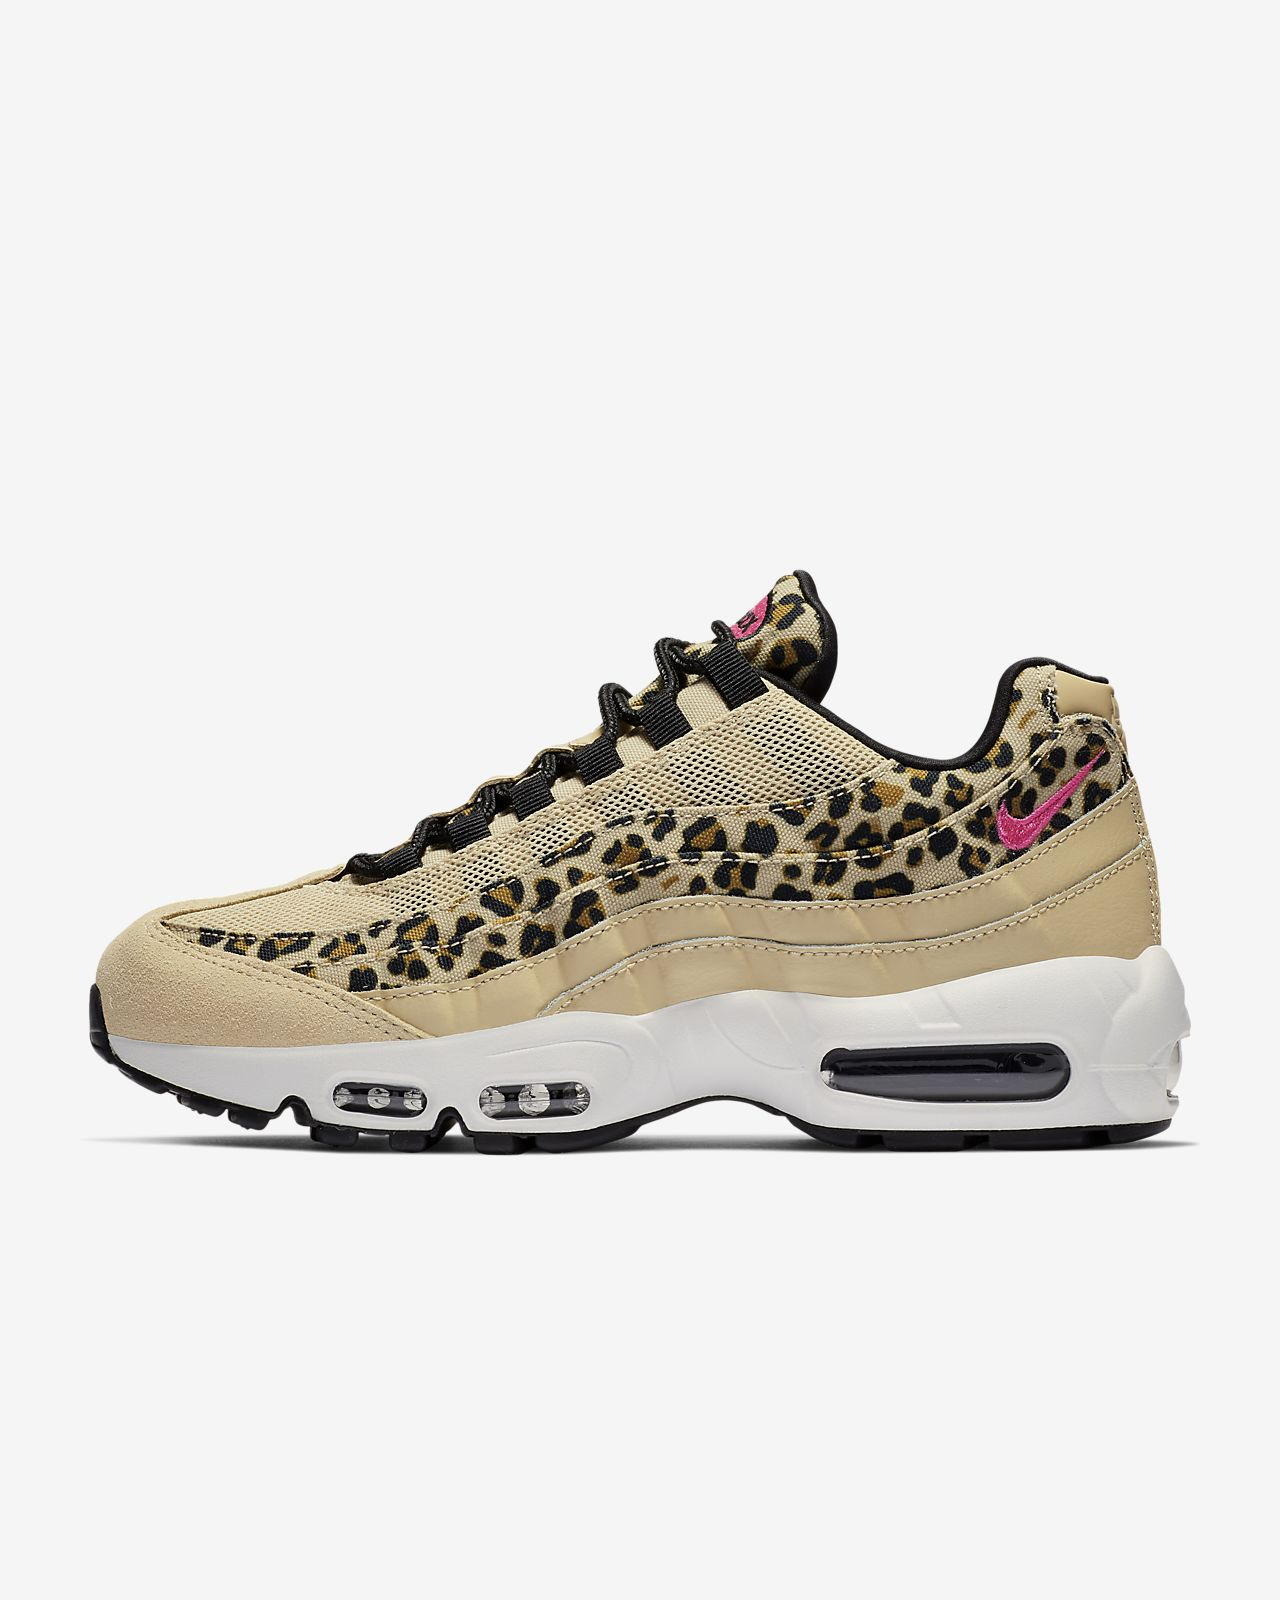 new products 260d3 7bf6b Women s Shoe. Nike Air Max 95 Premium Animal